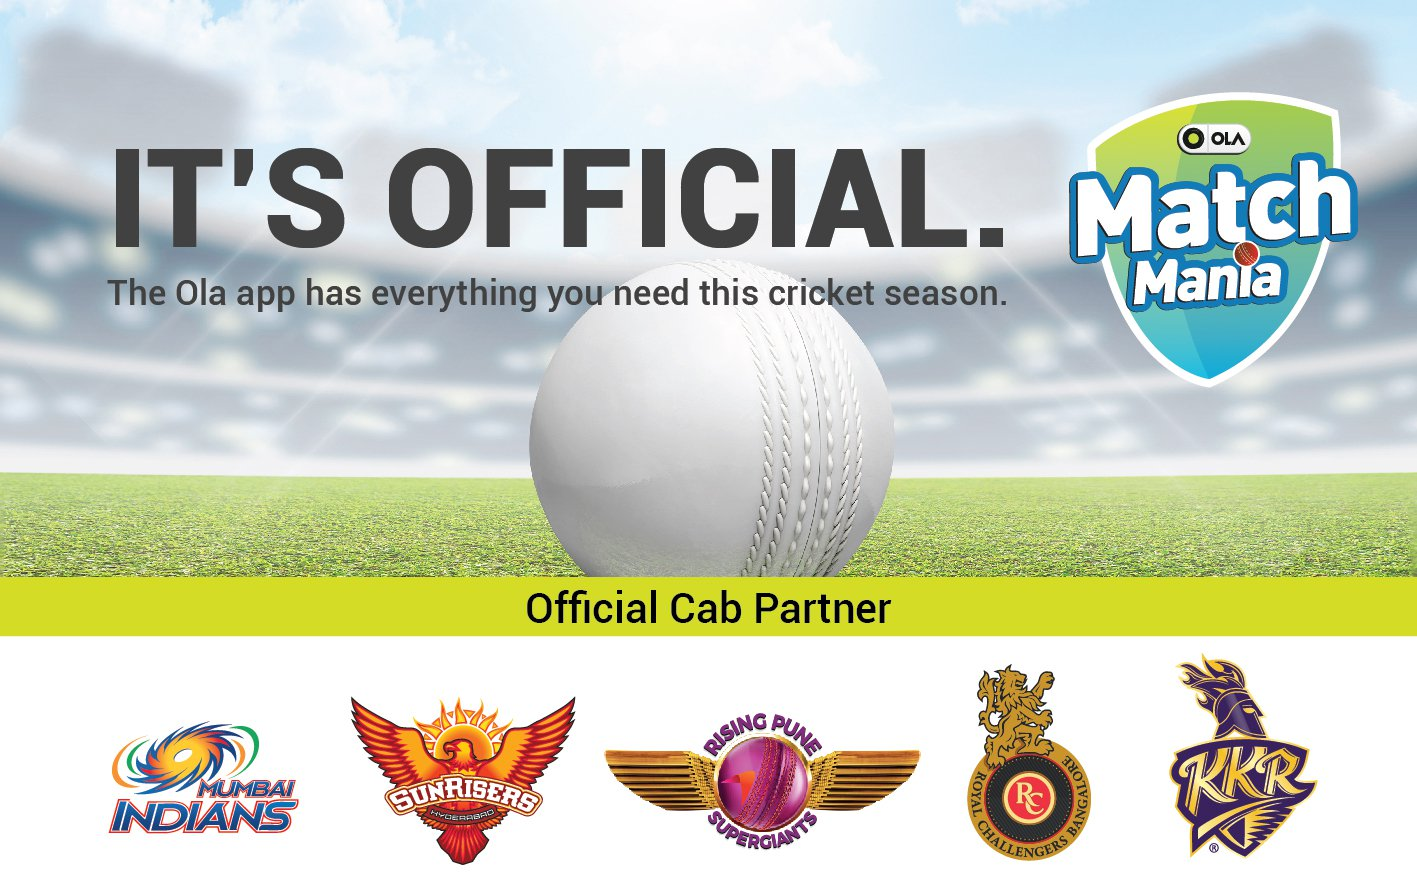 Ola Match Mania Offer:[MATCH DAY] Get Free IPL Tickets